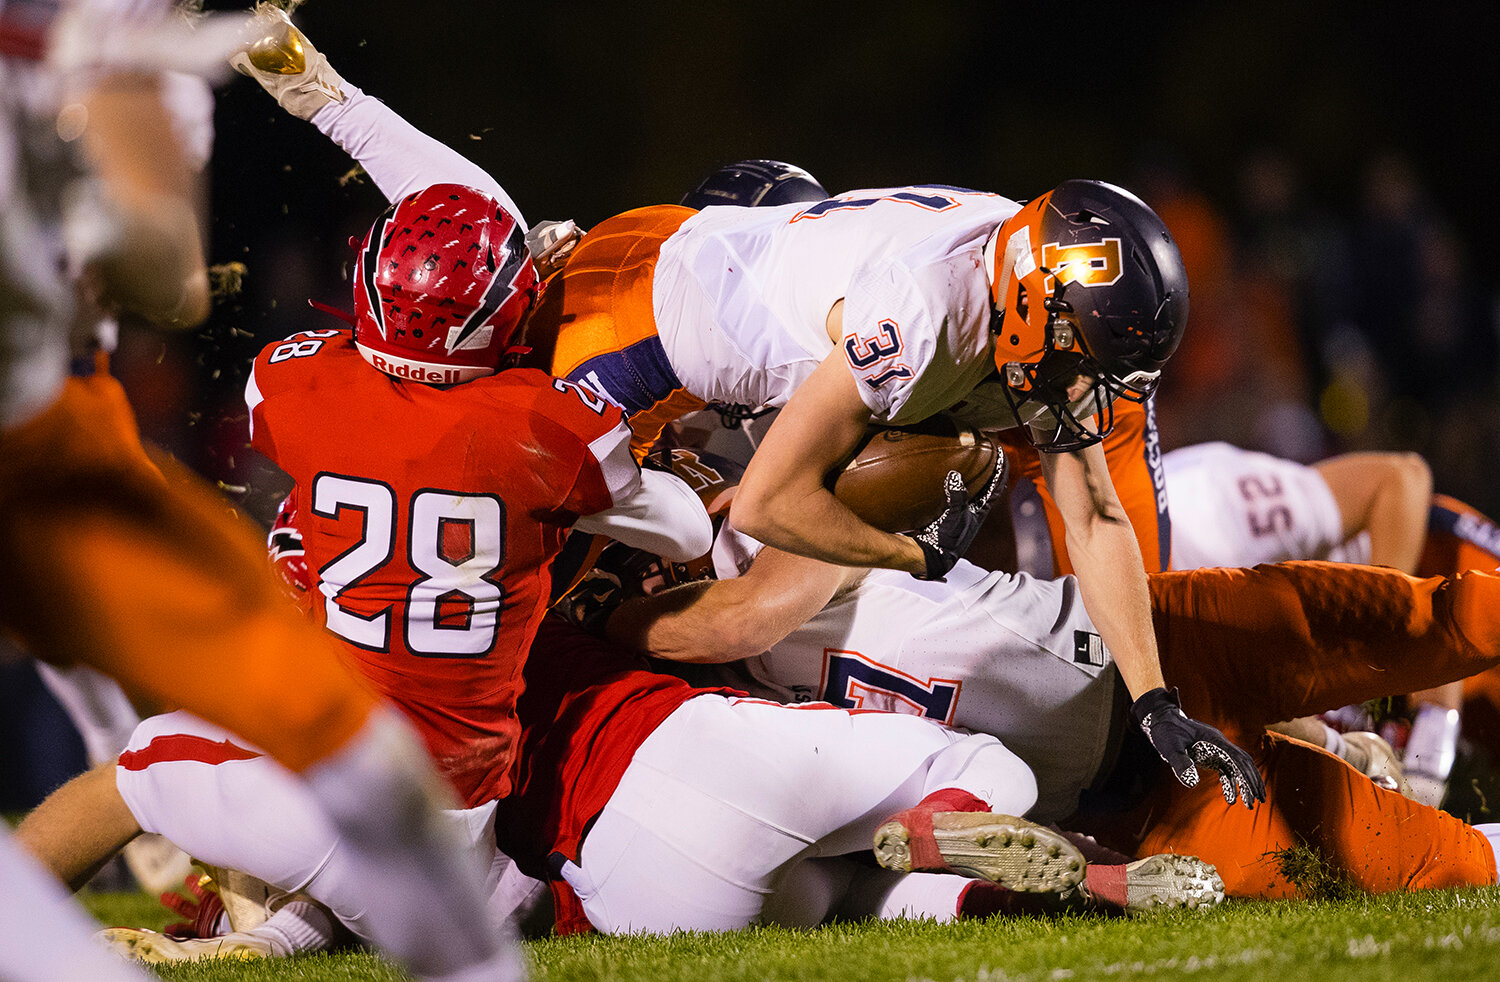 Rochester's Jacob DuRocher (31)  is wrapped up by Glenwood's Austin Bush (28) at Glenwood High School Friday, Oct. 25, 2019. [Ted Schurter/The State Journal-Register]